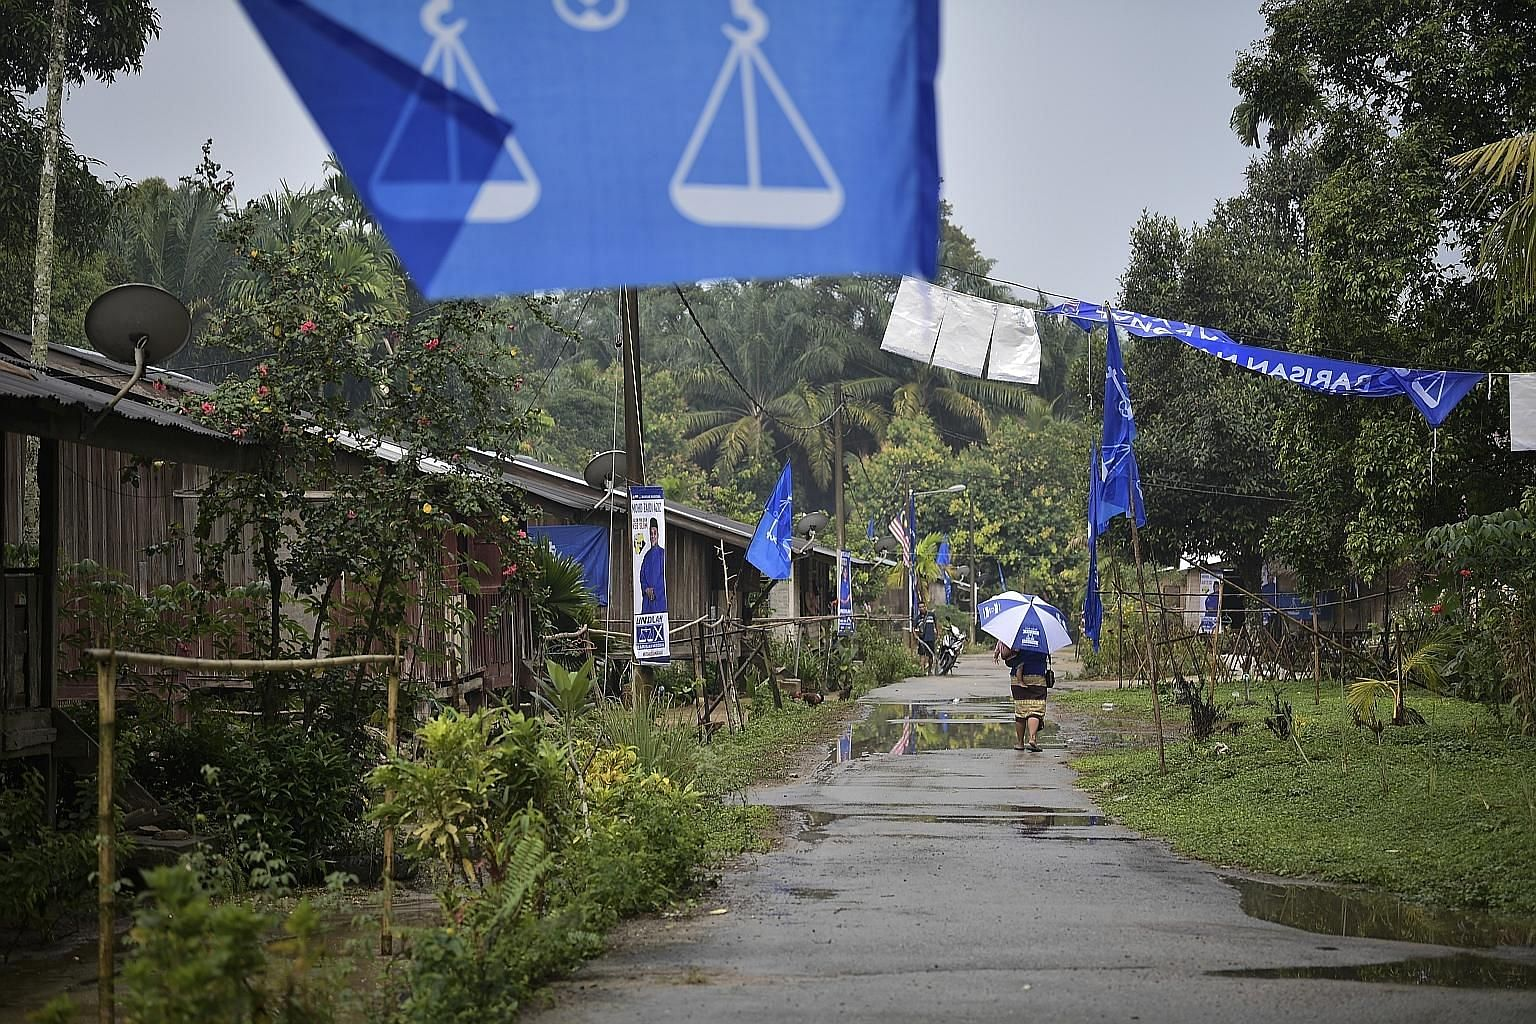 Flags and buntings in an Orang Asli village during the Slim by-election in Perak. Campaigning seemed lacklustre on the whole.